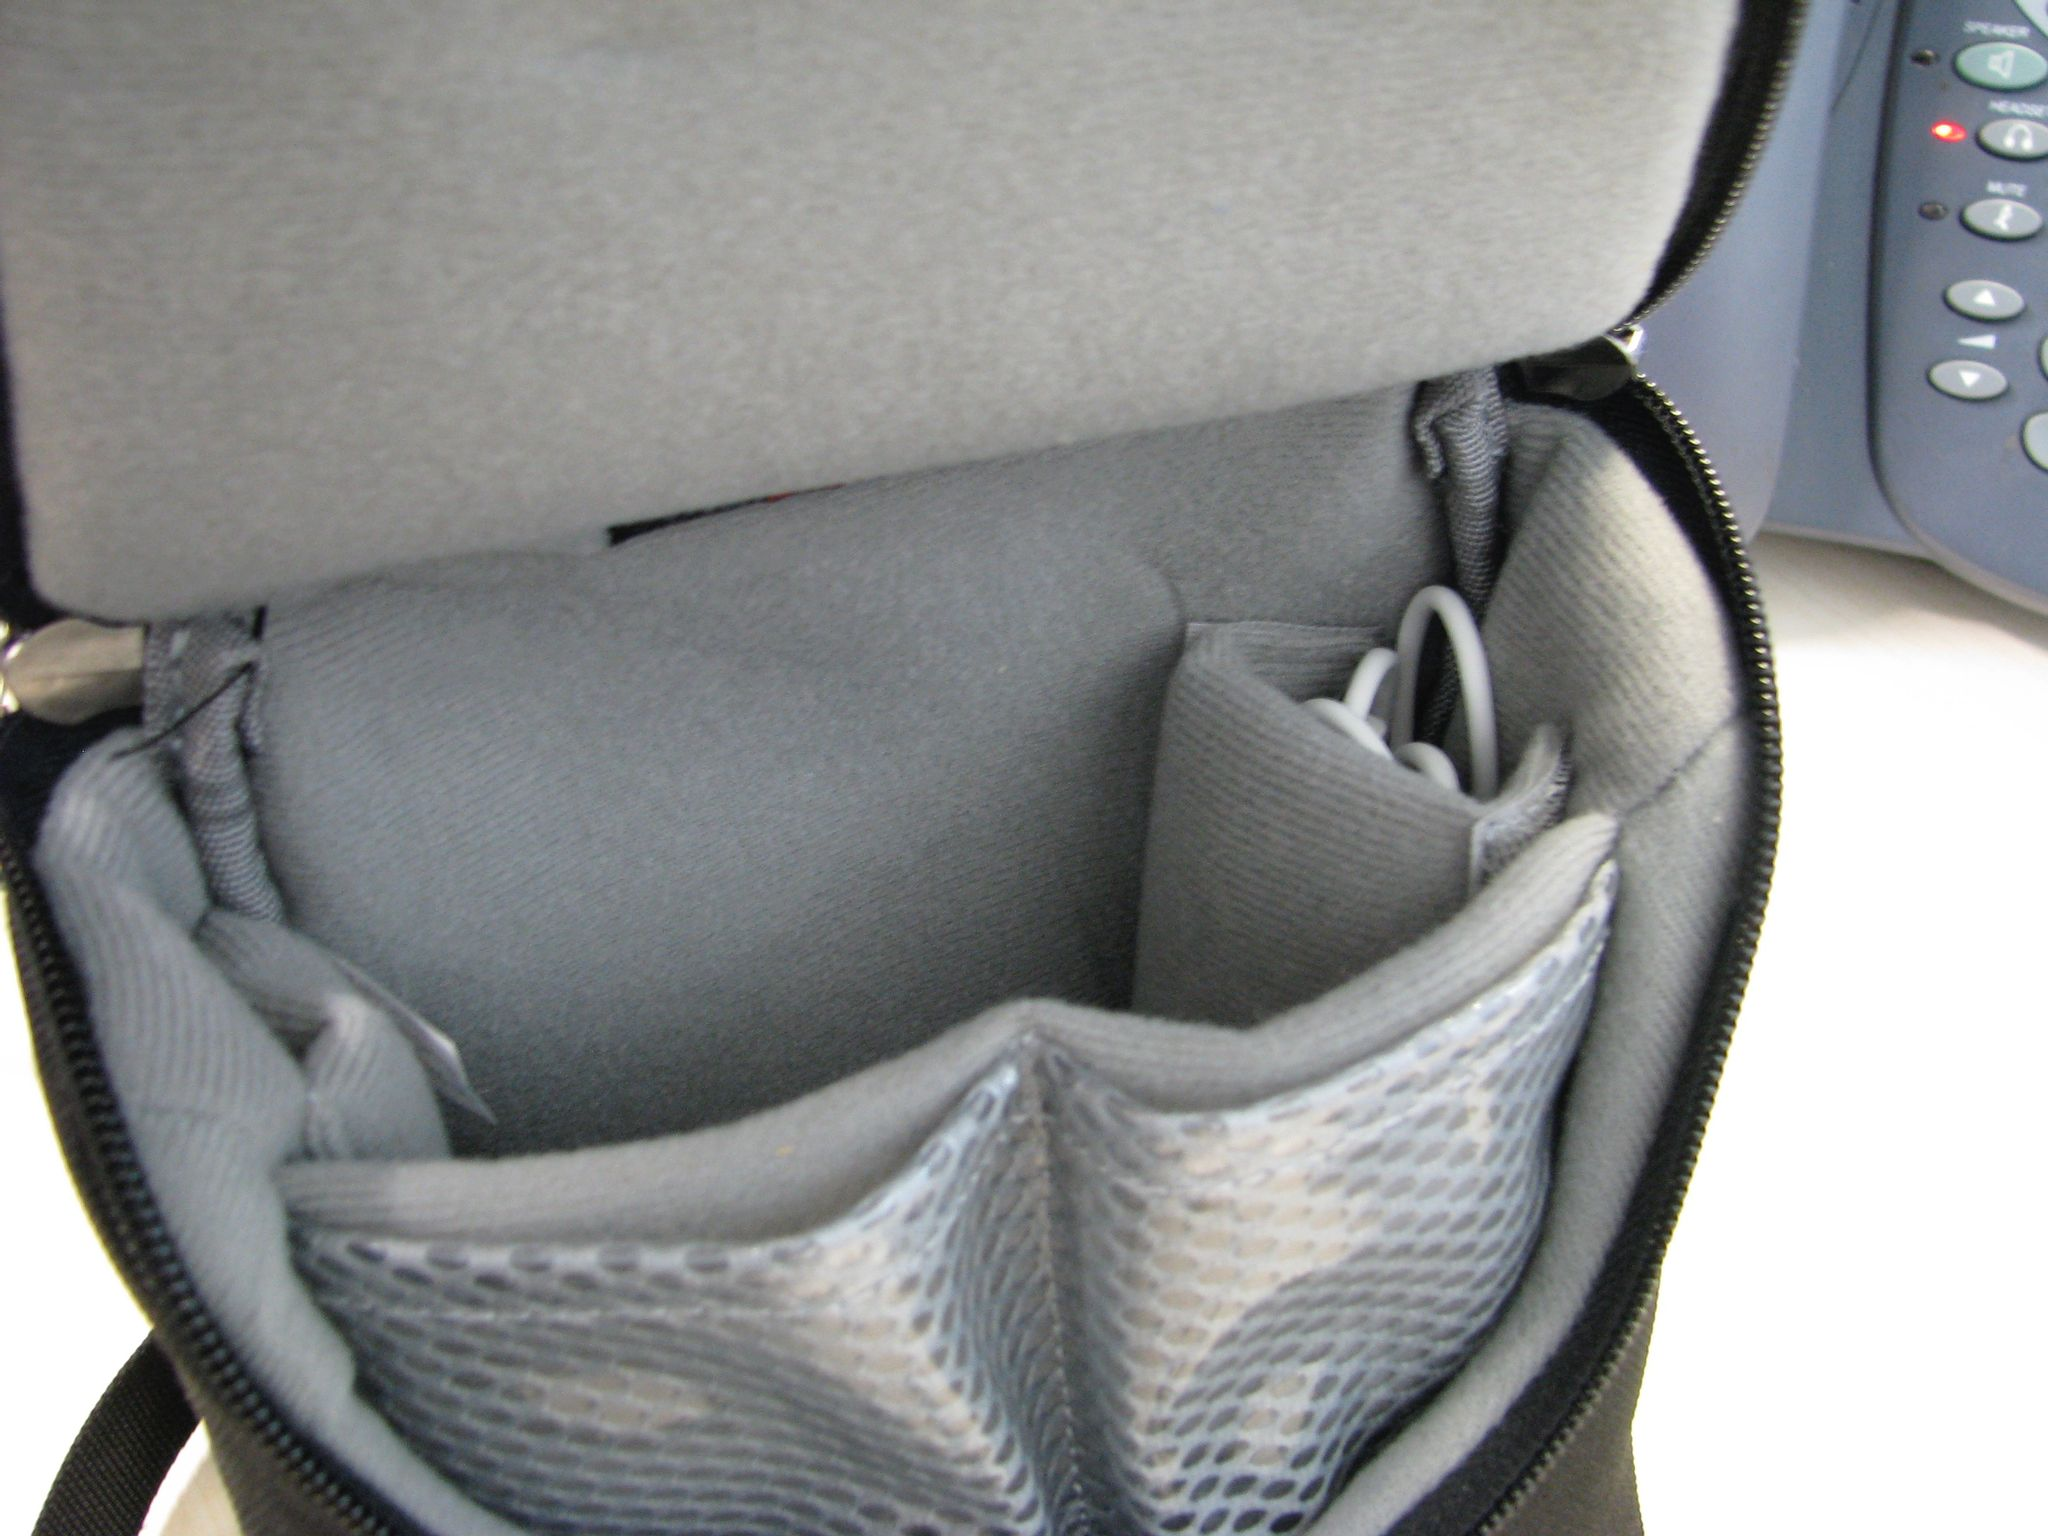 A photo of the inside of a small Lowepro brand shoulder-bag camera bag showing the compartments.